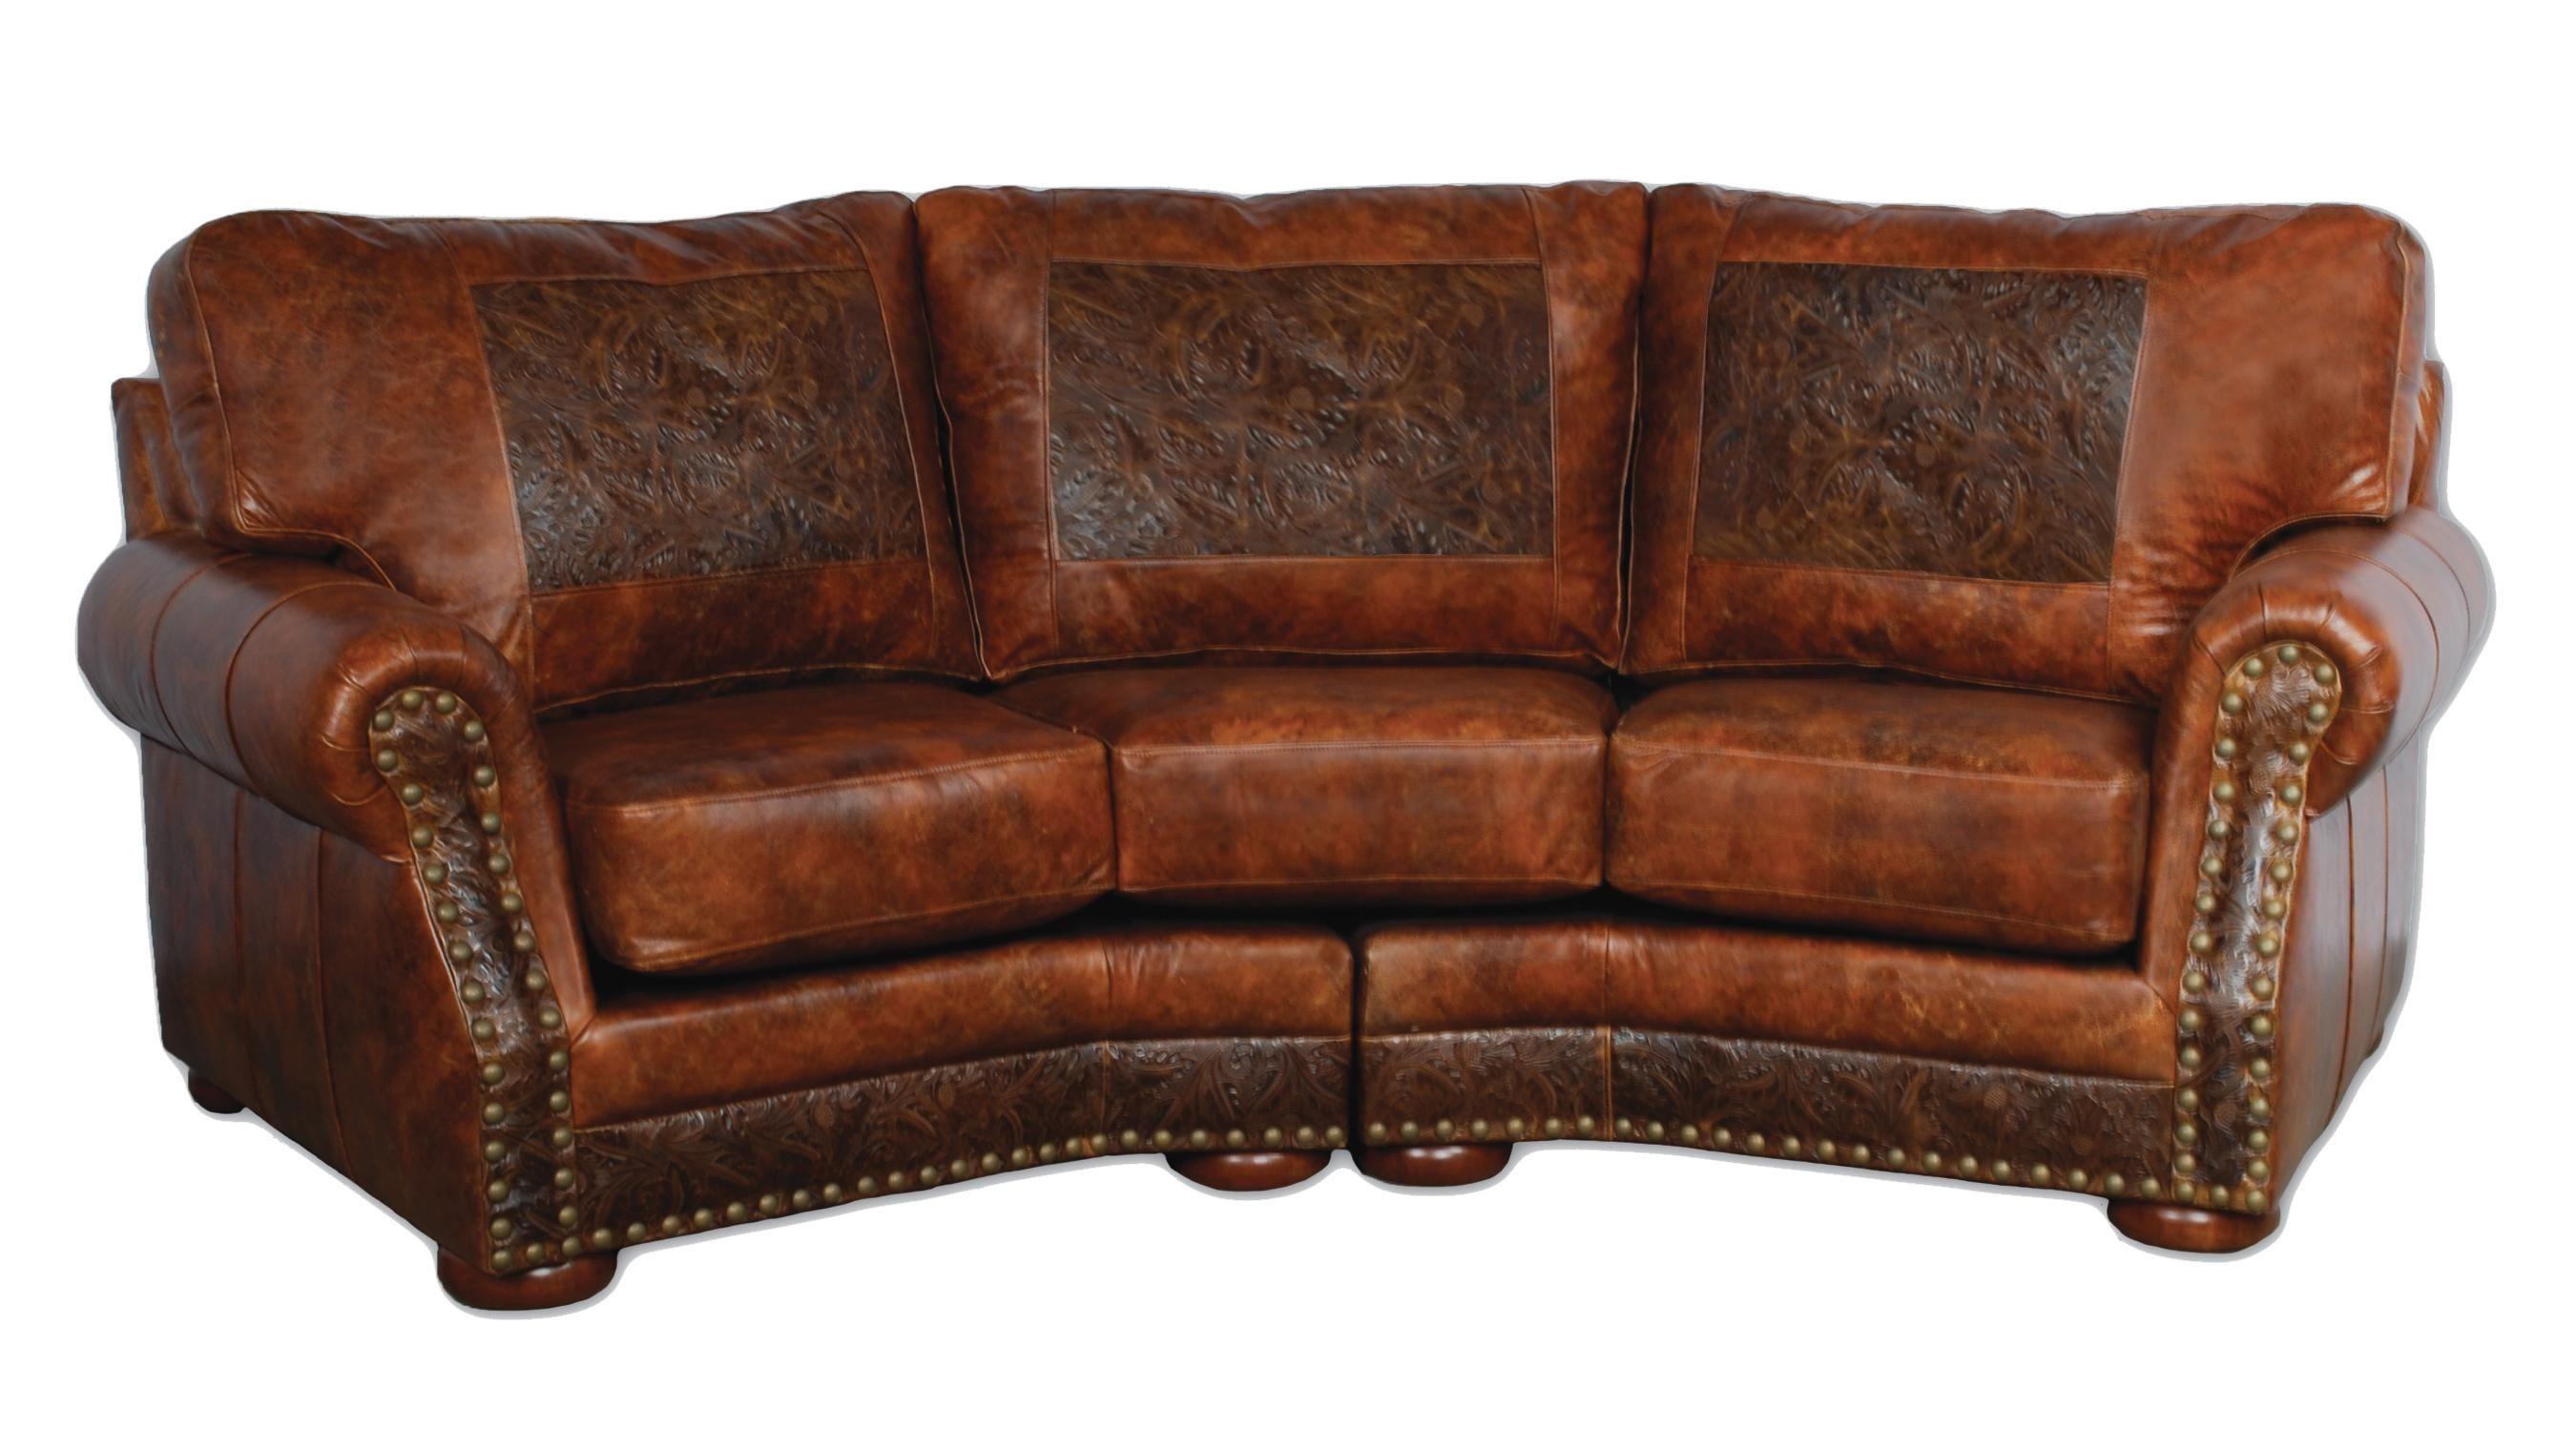 Modern Living Room Design Ideas With Distressed Leather ...